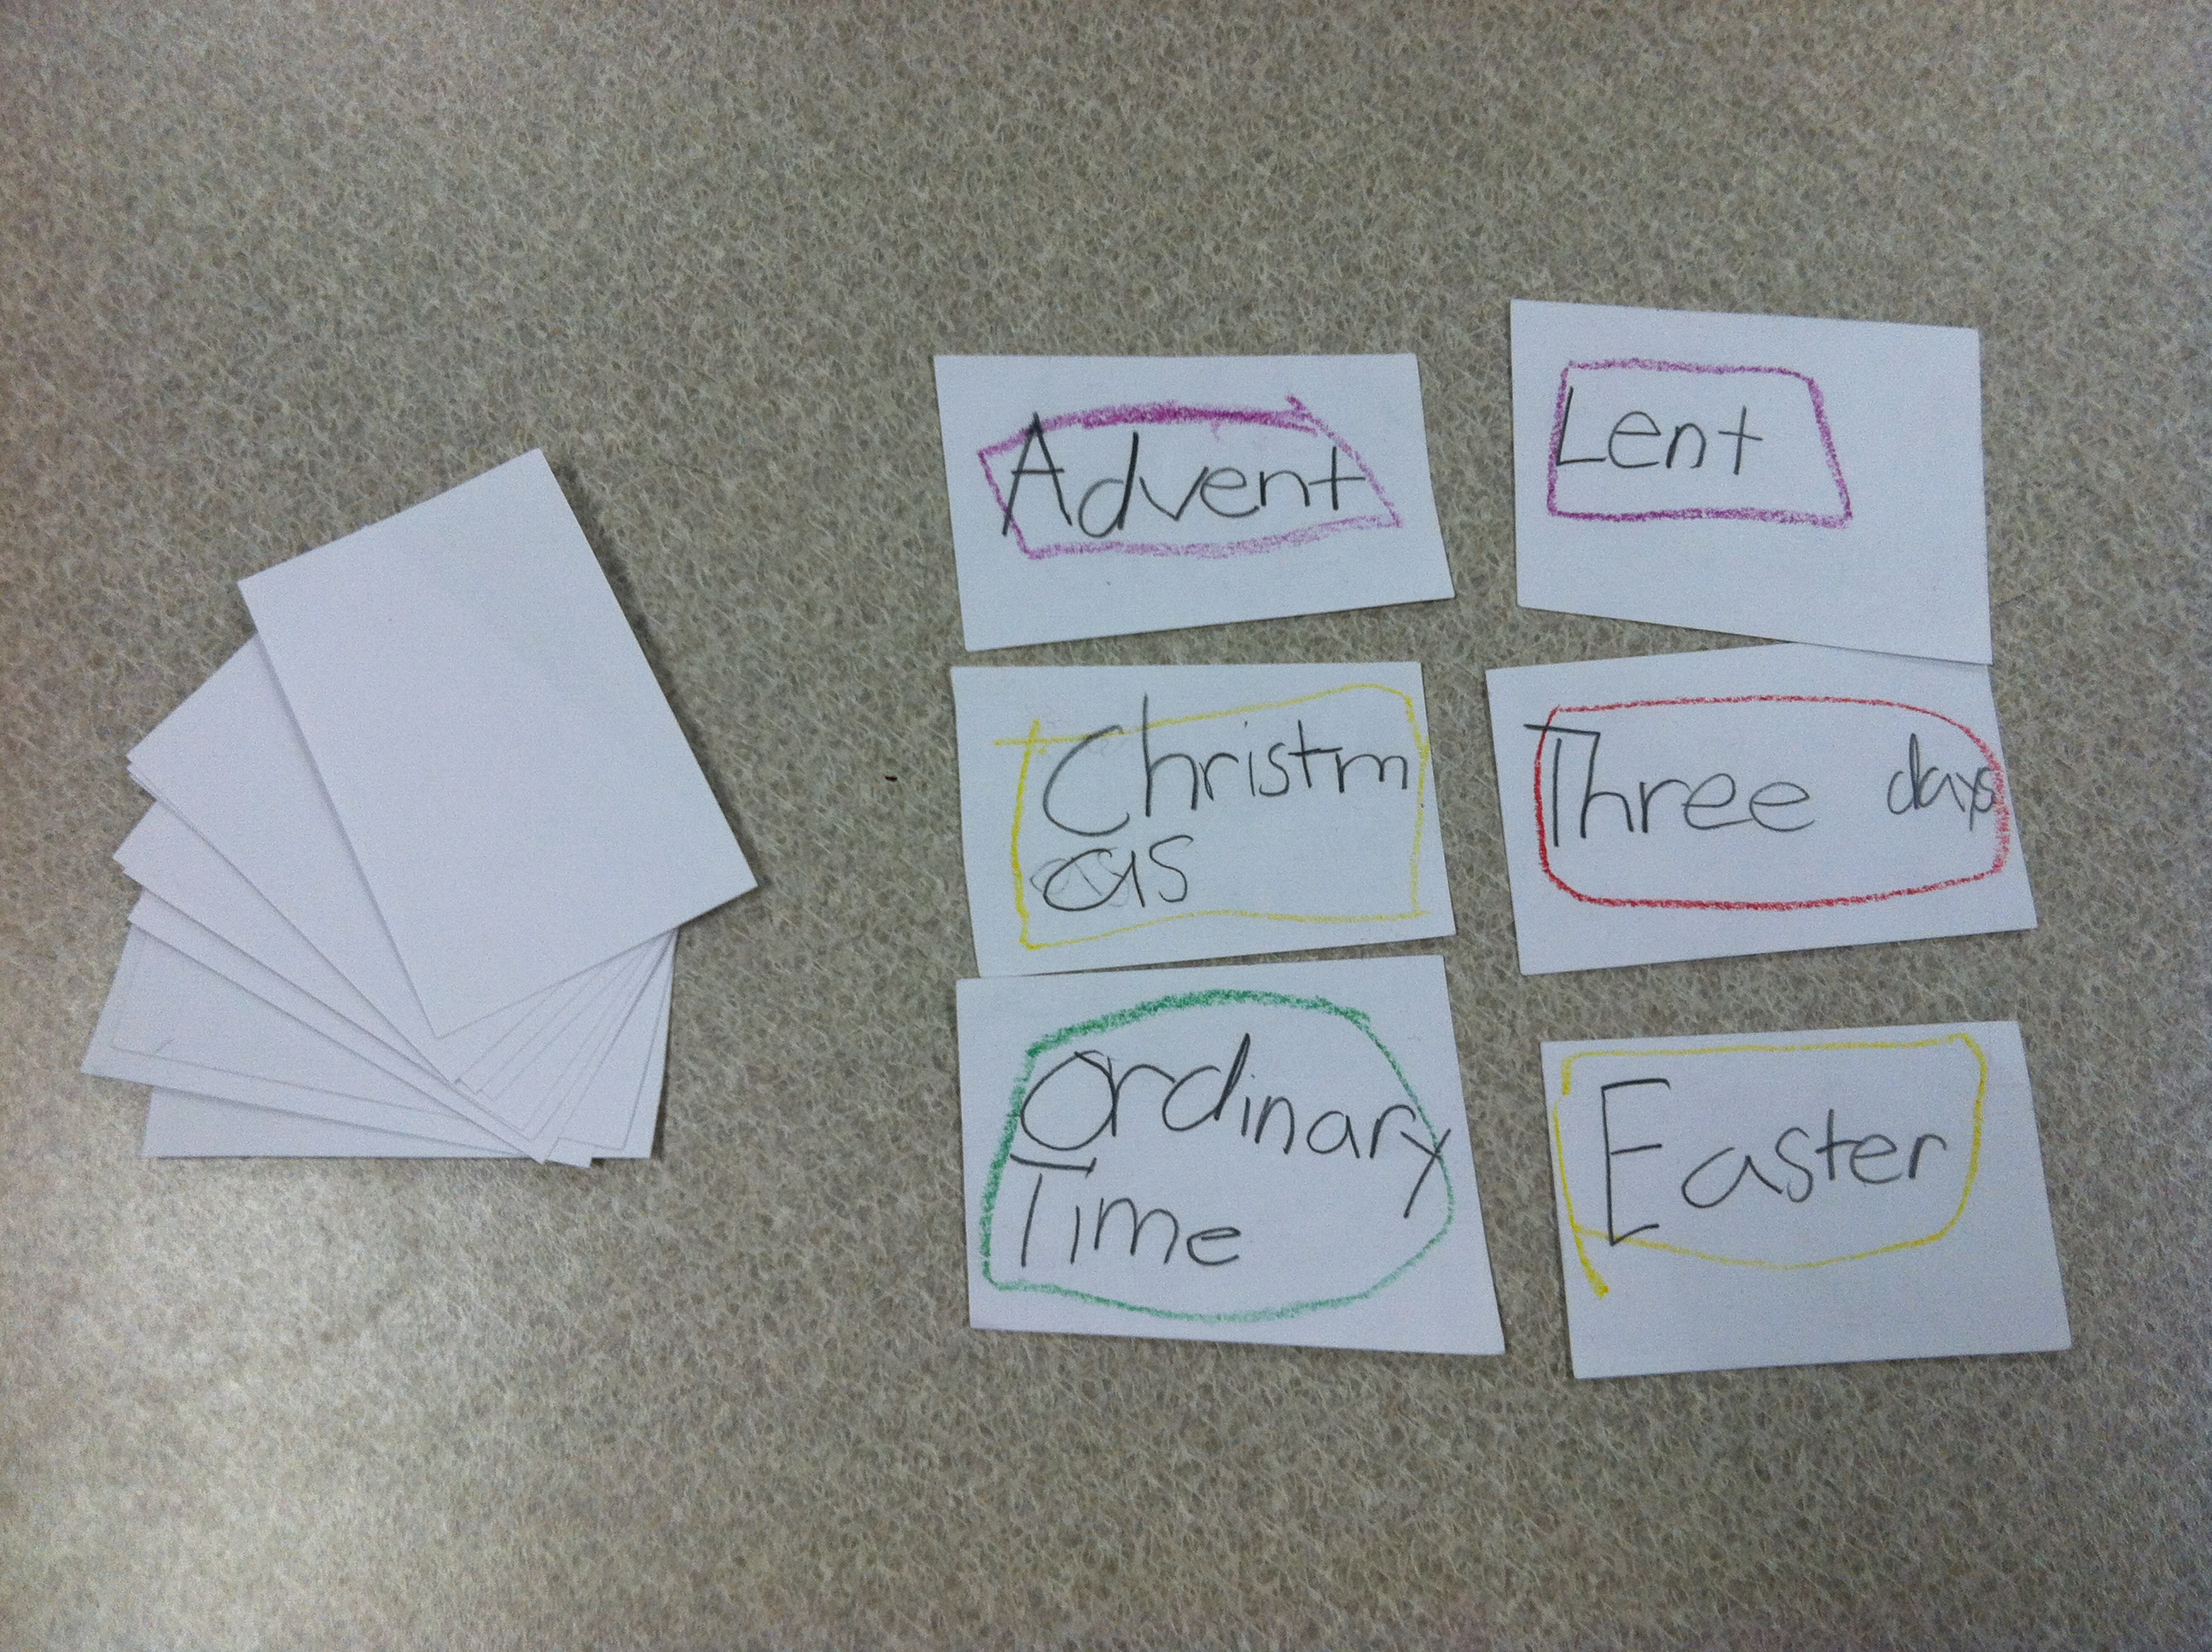 Liturgical Year Lesson Plan And Flashcard Activity